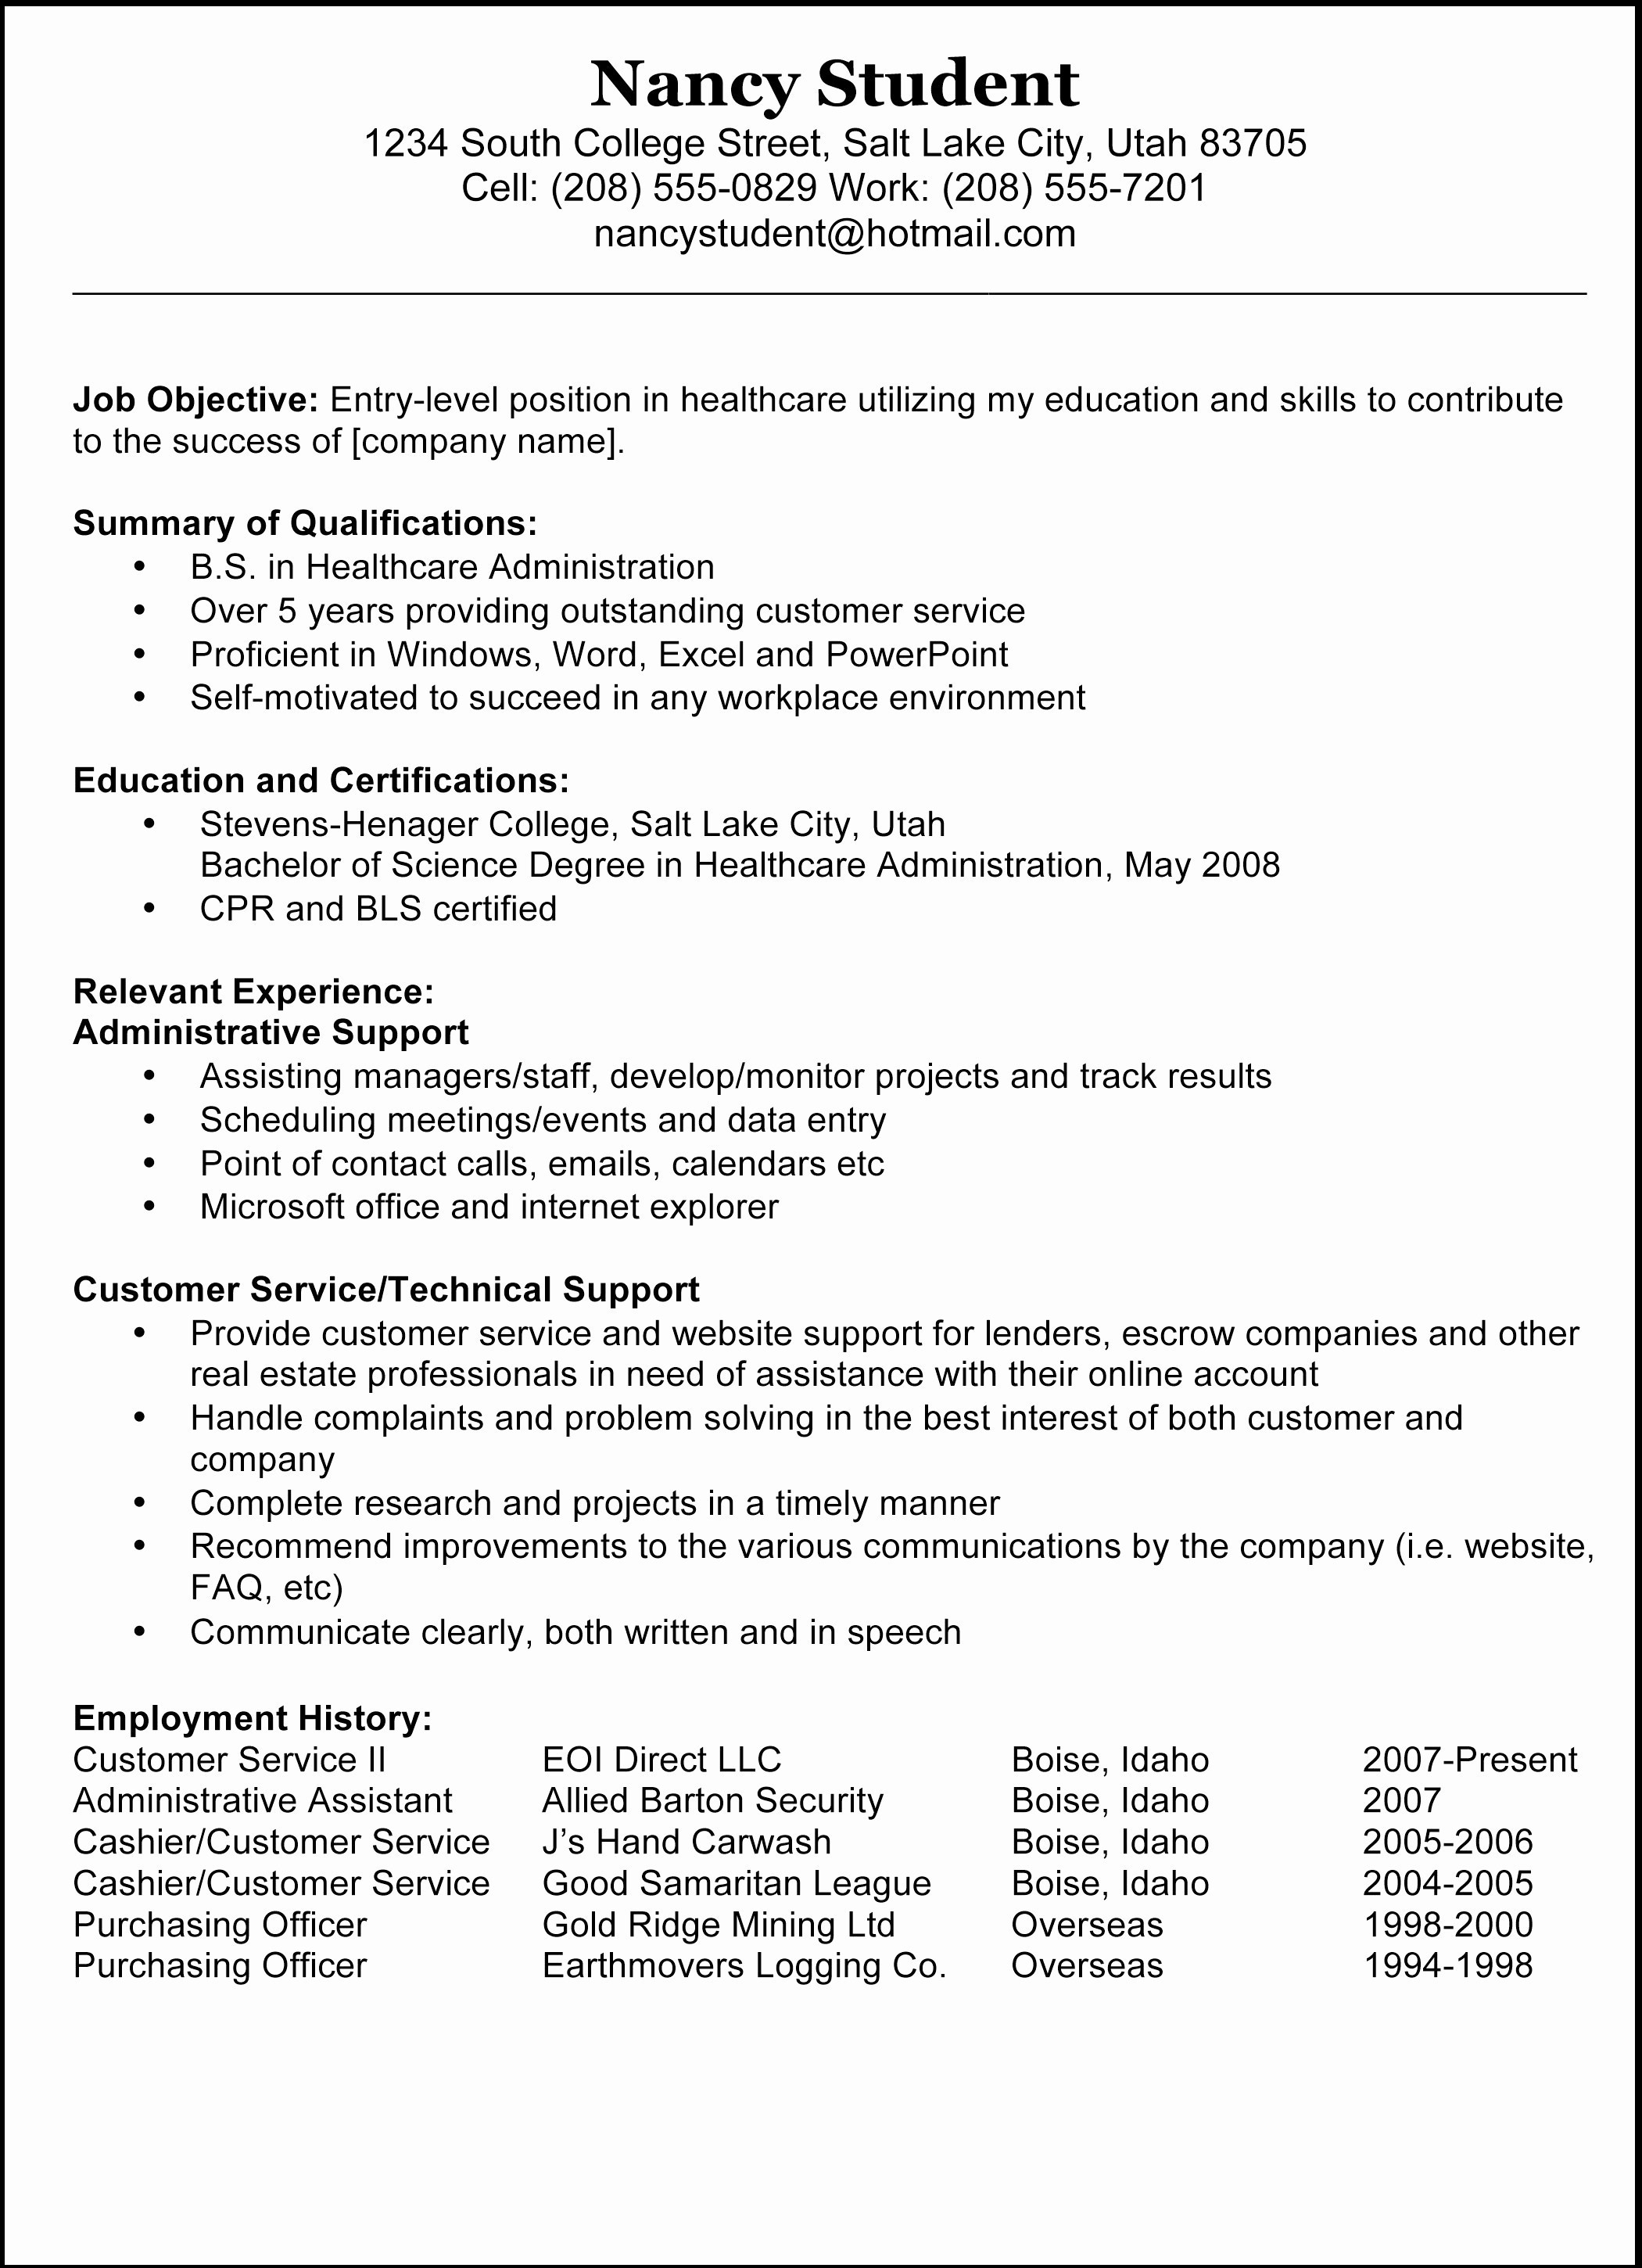 Med School Resume Sample - Healthcare Knowledge Ltd